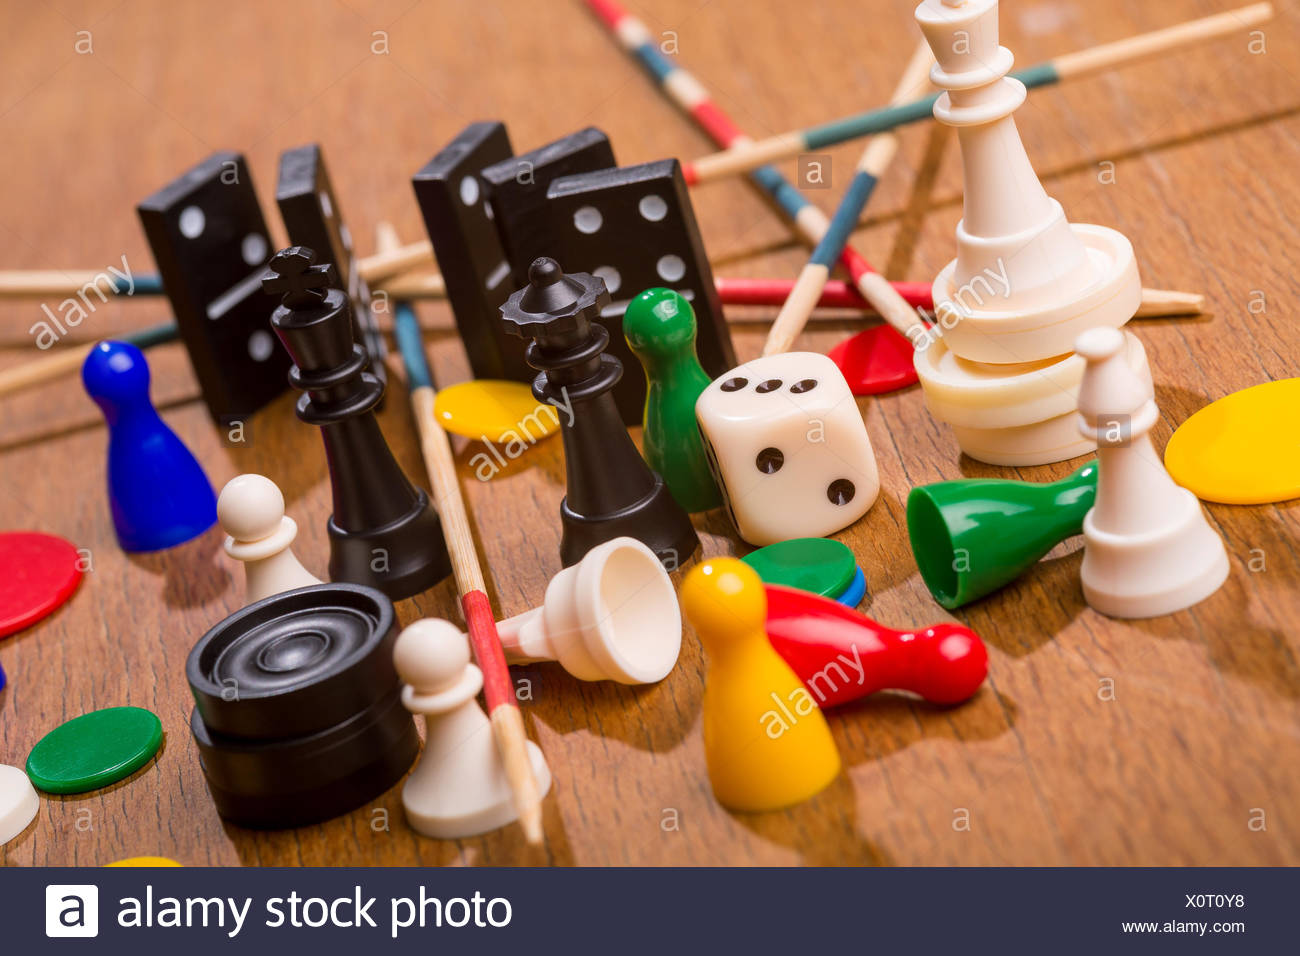 Game items - Stock Image